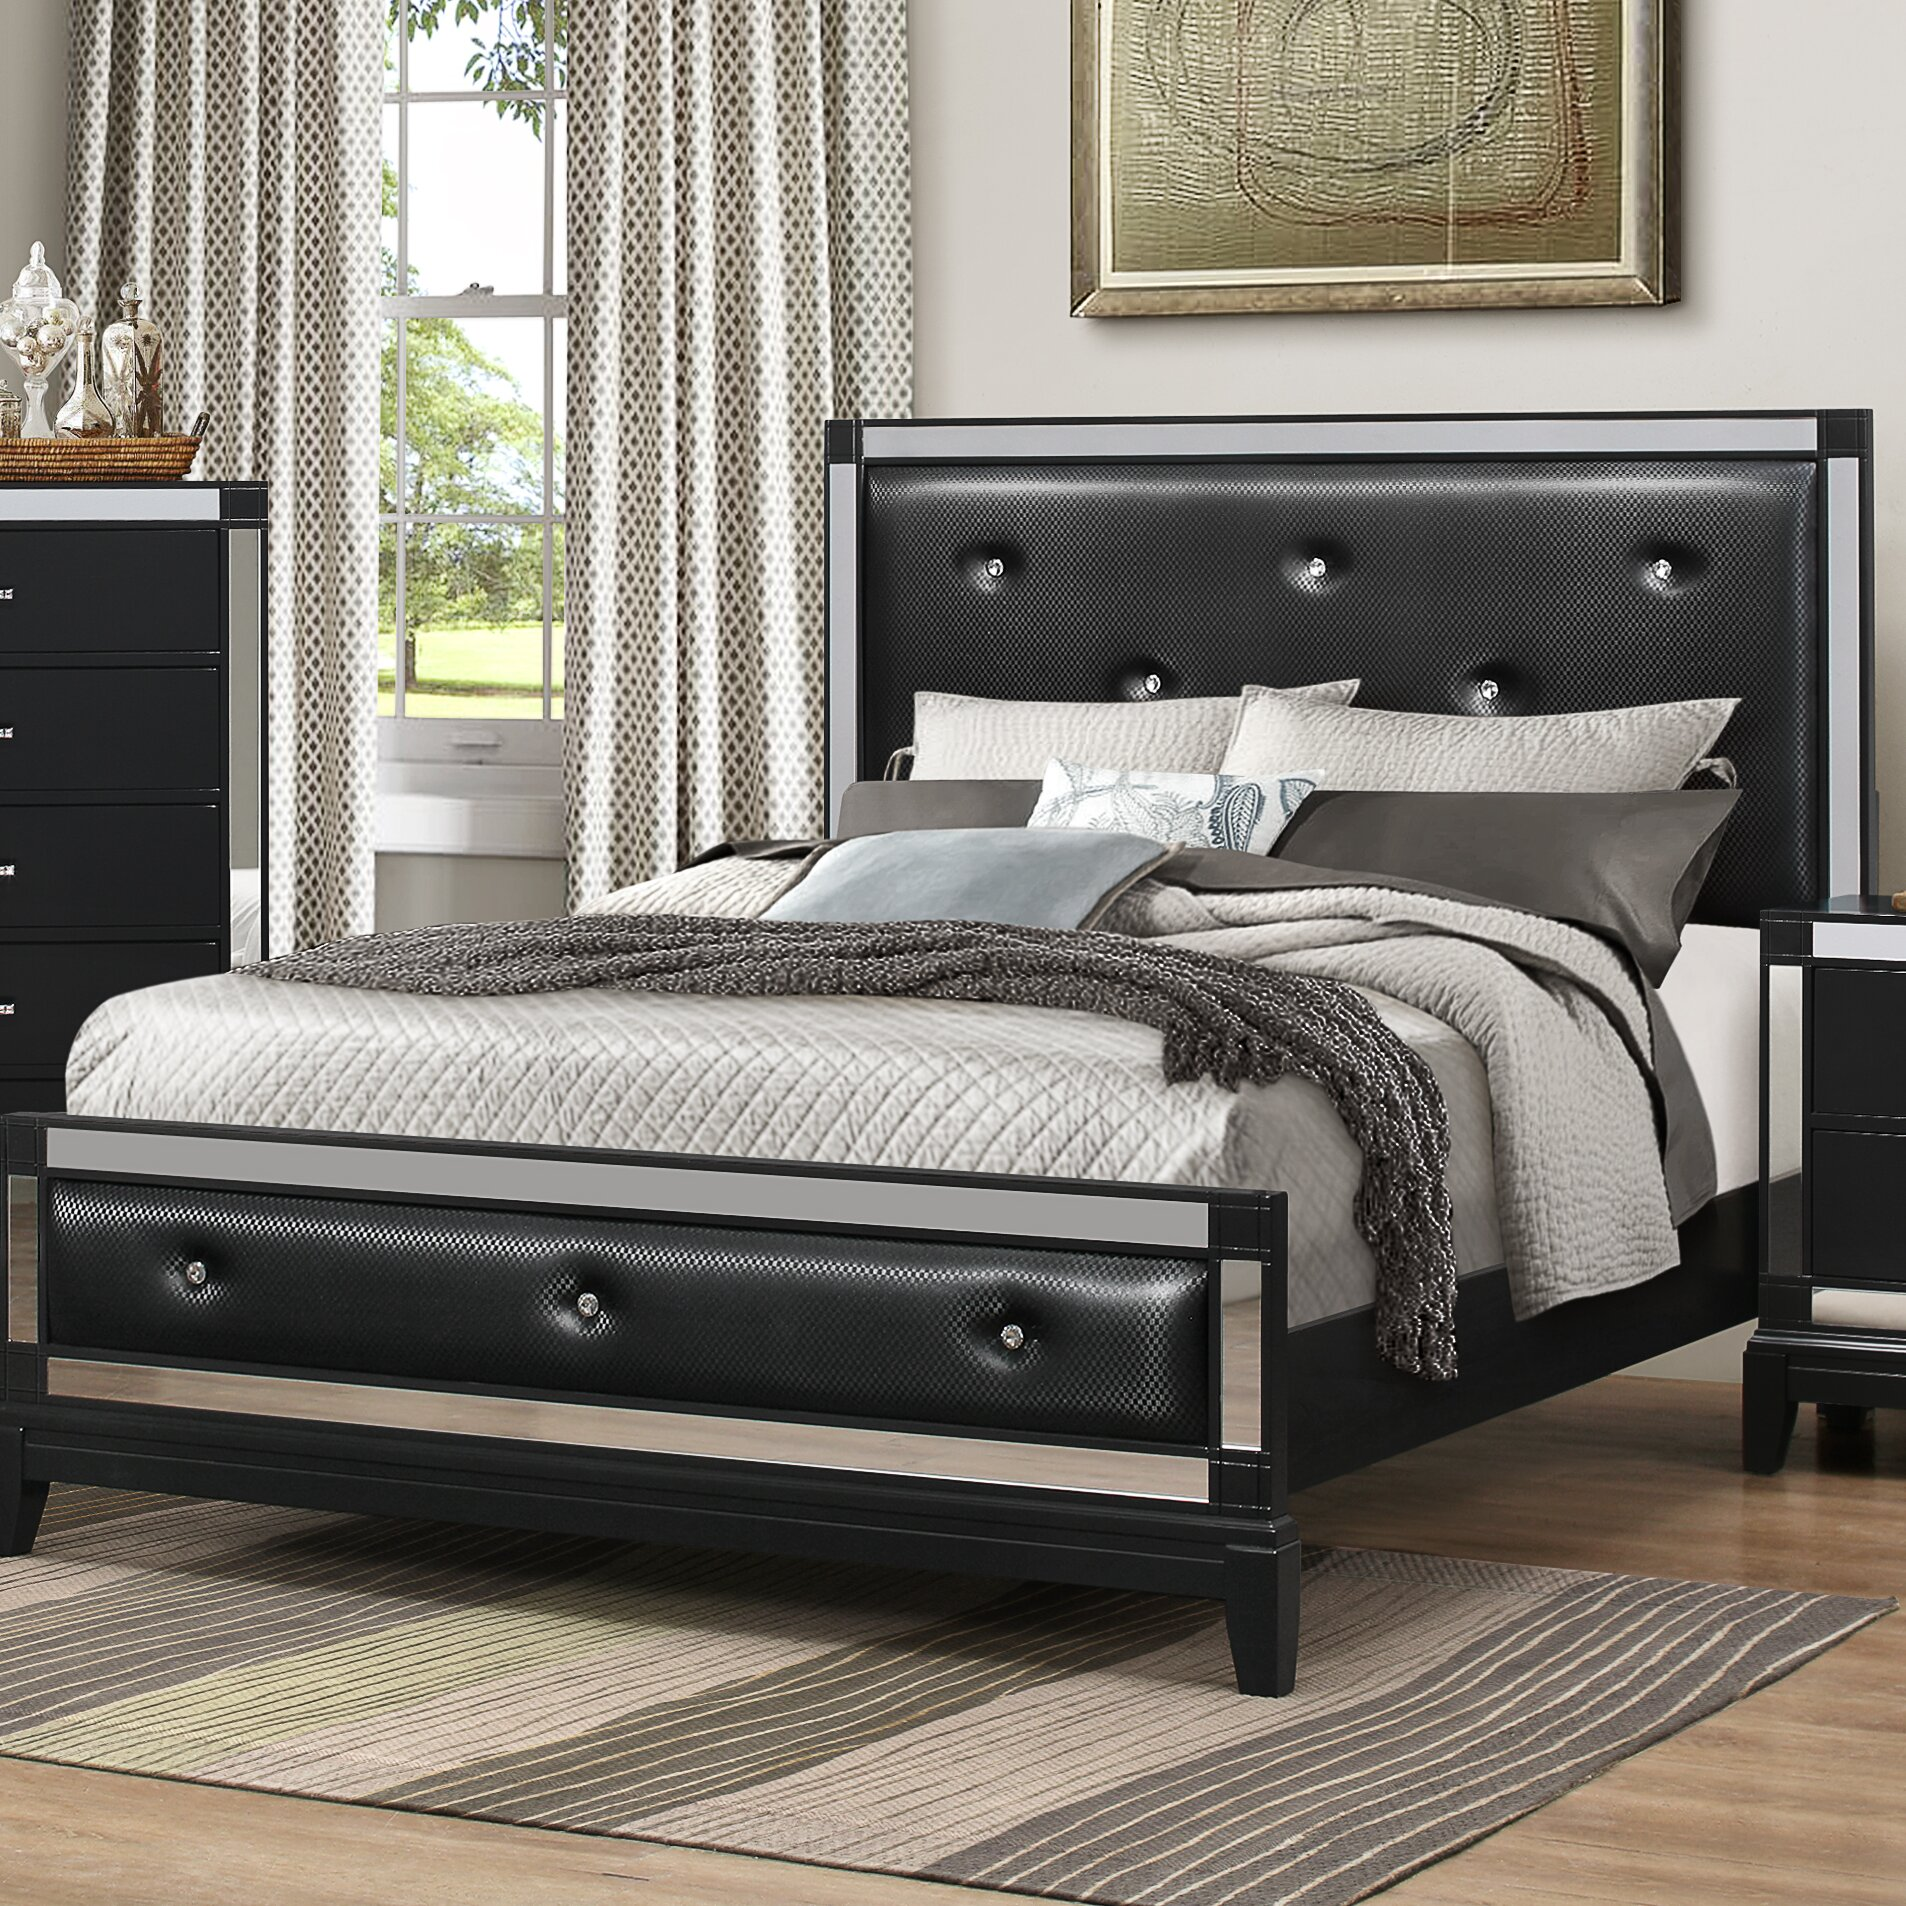 Furniture Bedroom Furniture Queen Bedroom Sets House Of Hampton